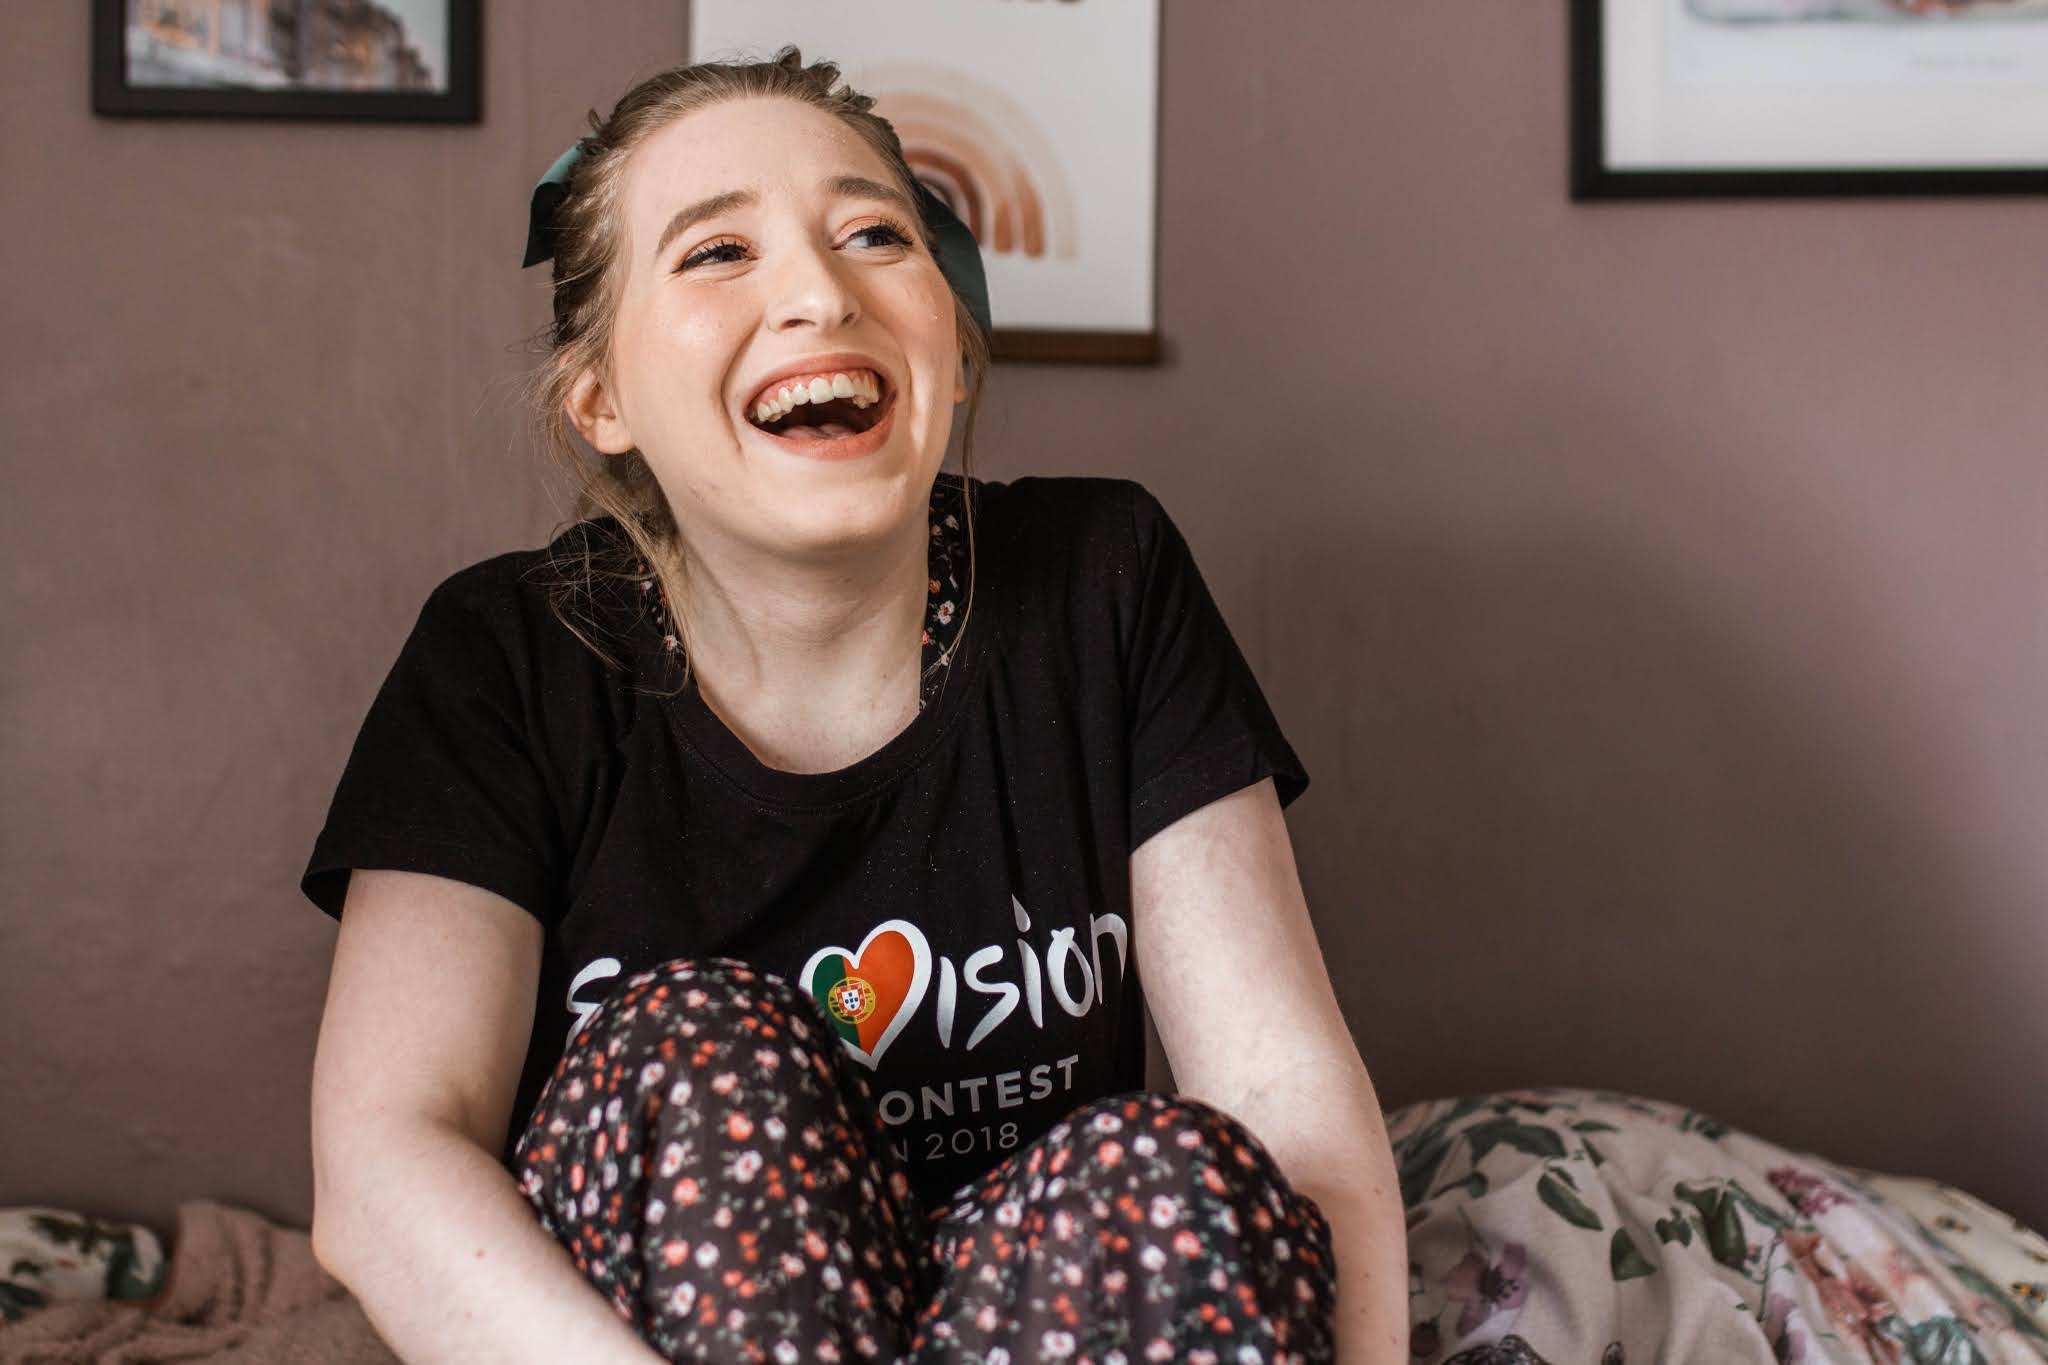 girl smiling with eurovision t shirt